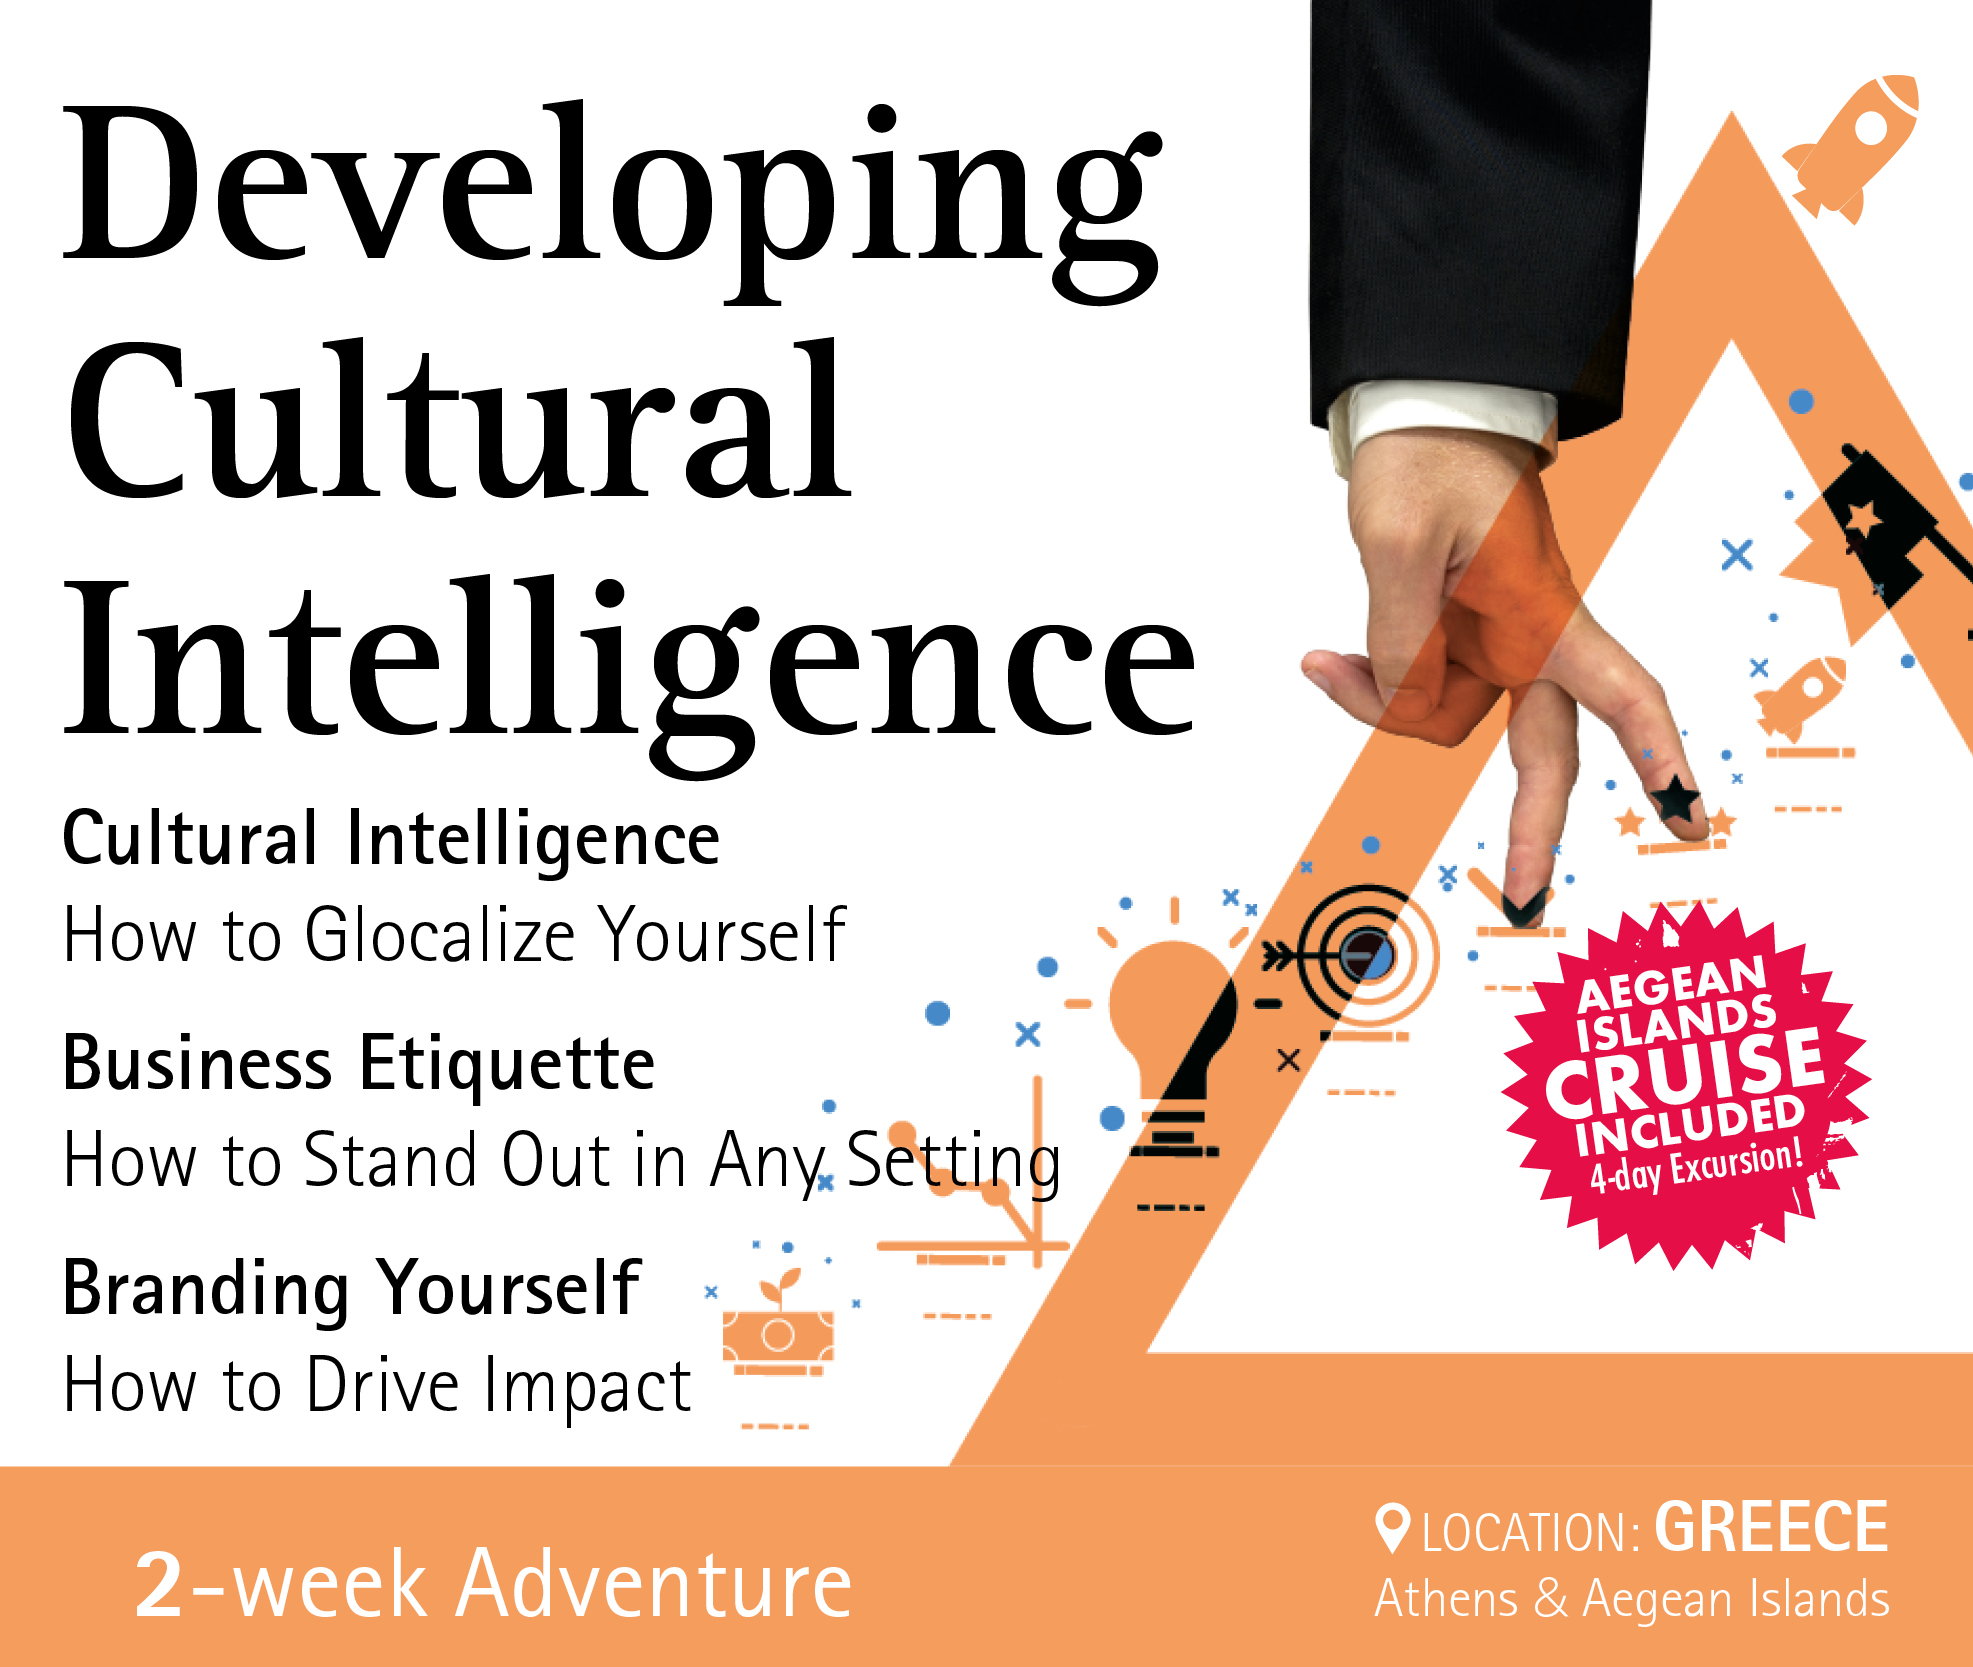 Developing Cultural Intelligence